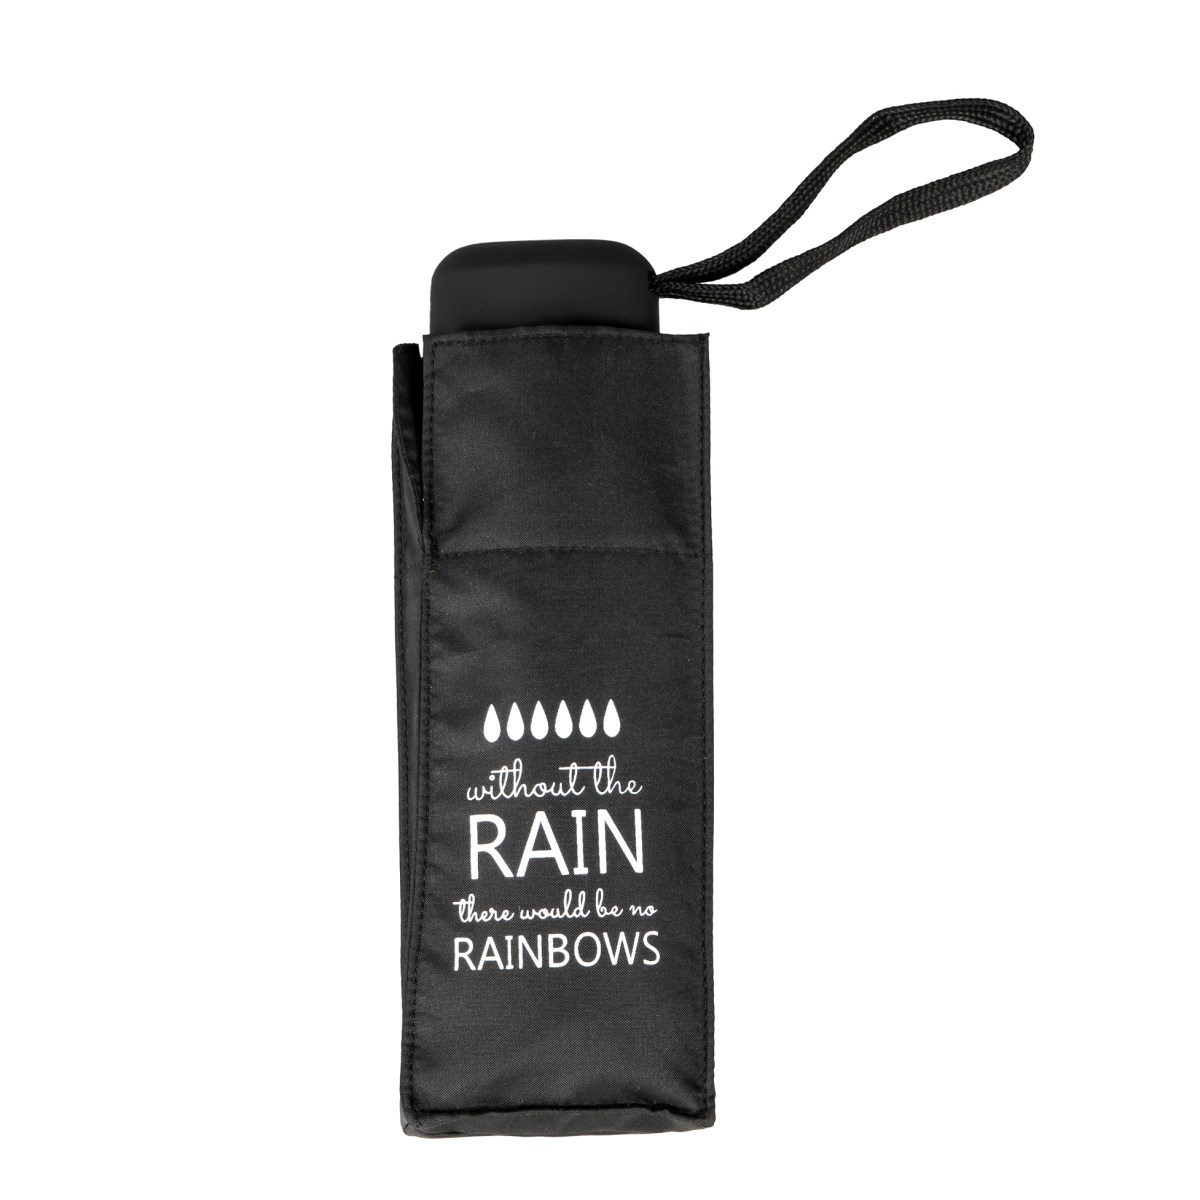 Without The Rain There Would Be No Rainbows Slogan Mini Compact Umbrella (51031)